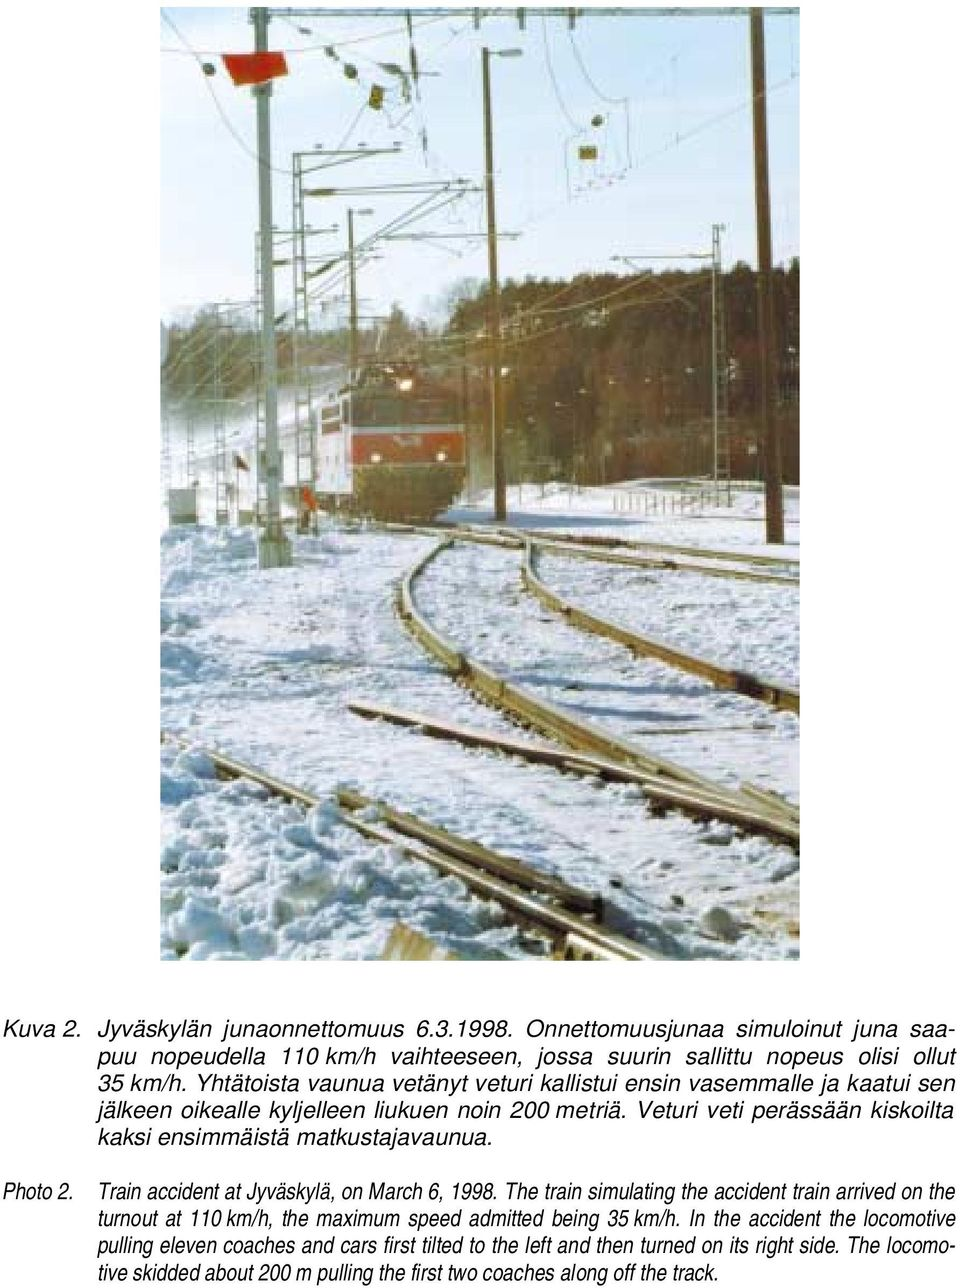 Veturi veti perässään kiskoilta kaksi ensimmäistä matkustajavaunua. Photo 2. Train accident at Jyväskylä, on March 6, 1998.